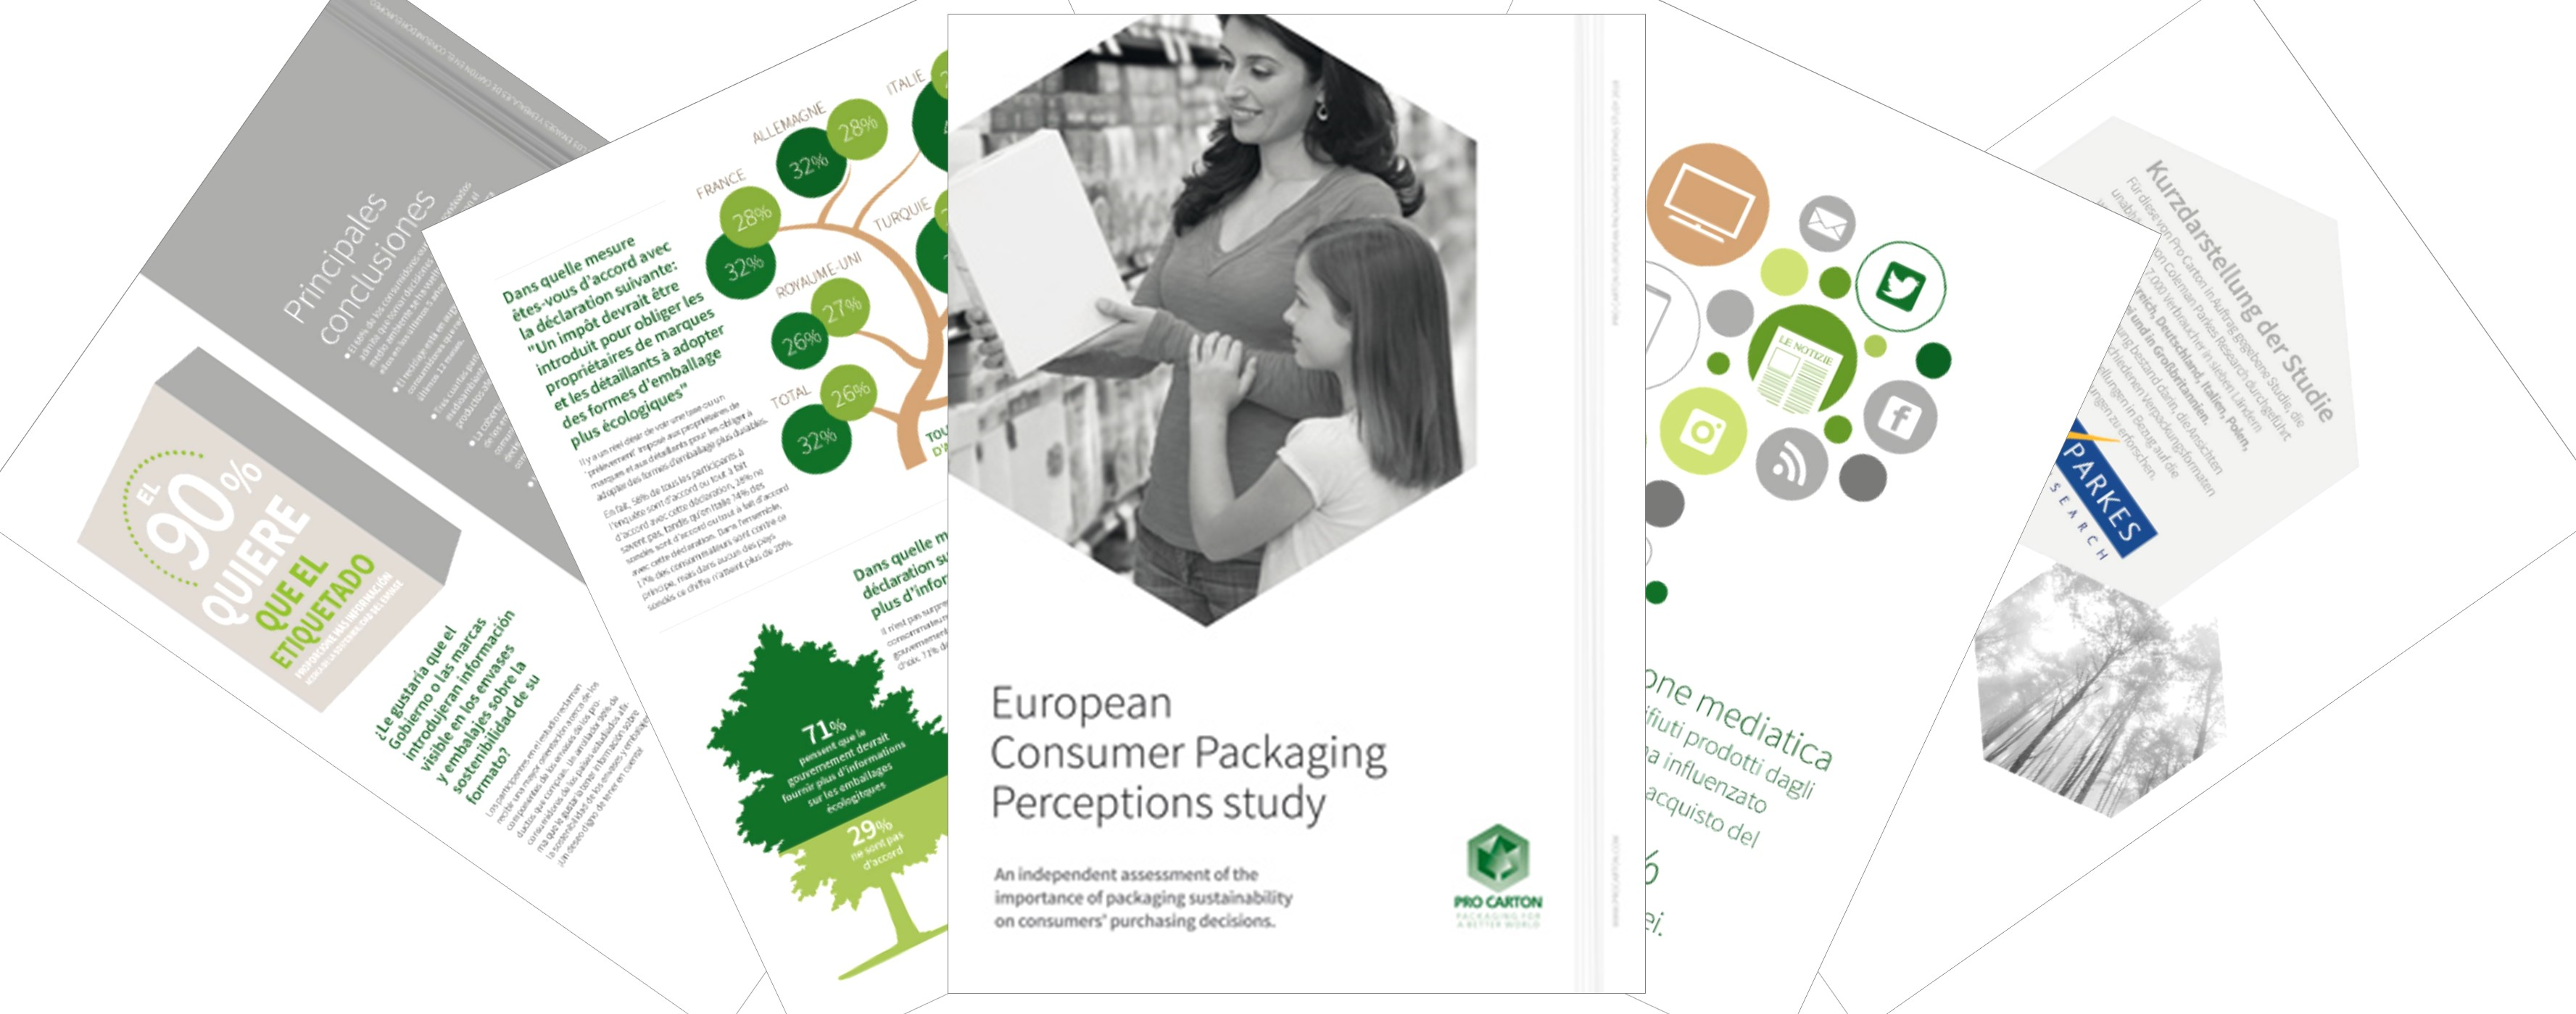 European Consumer Packaging Perceptions Study